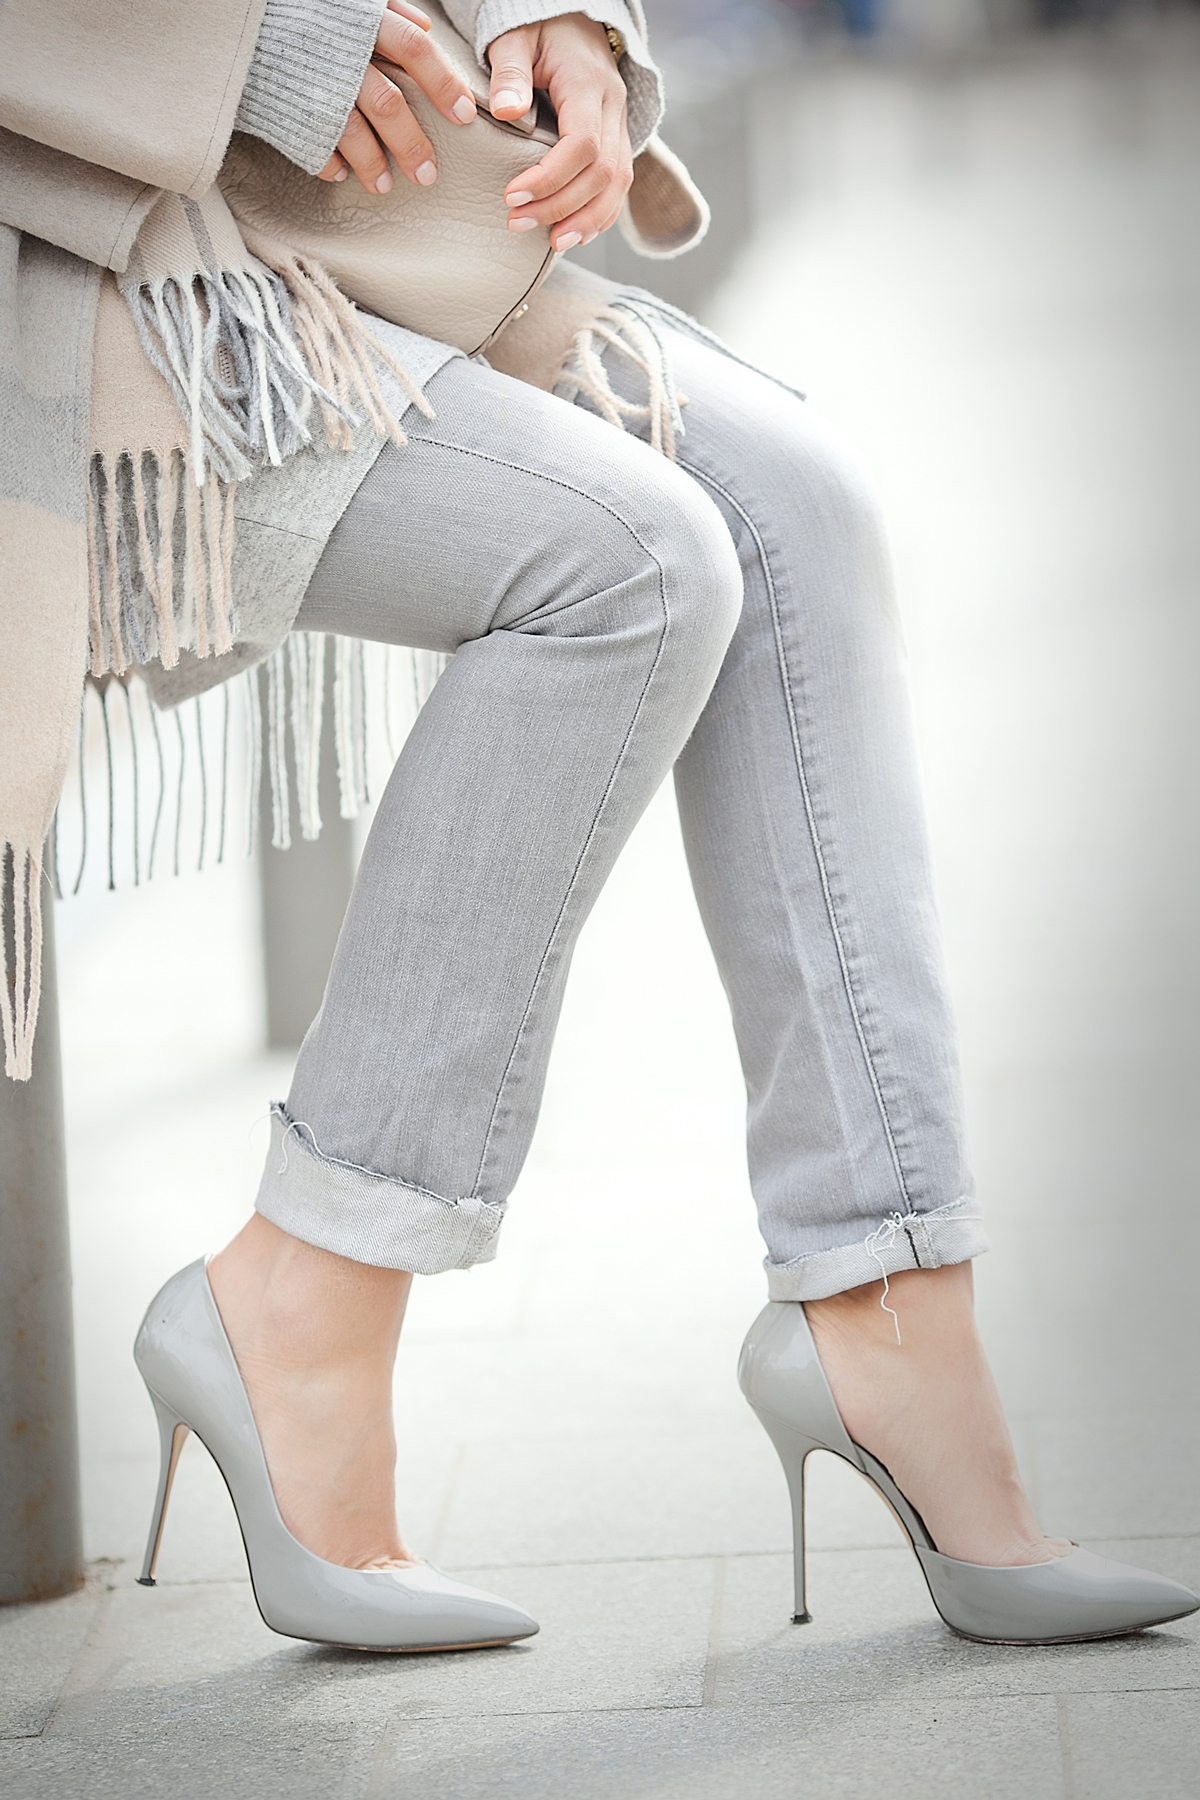 casadei grey pumps on GalantGirl.com